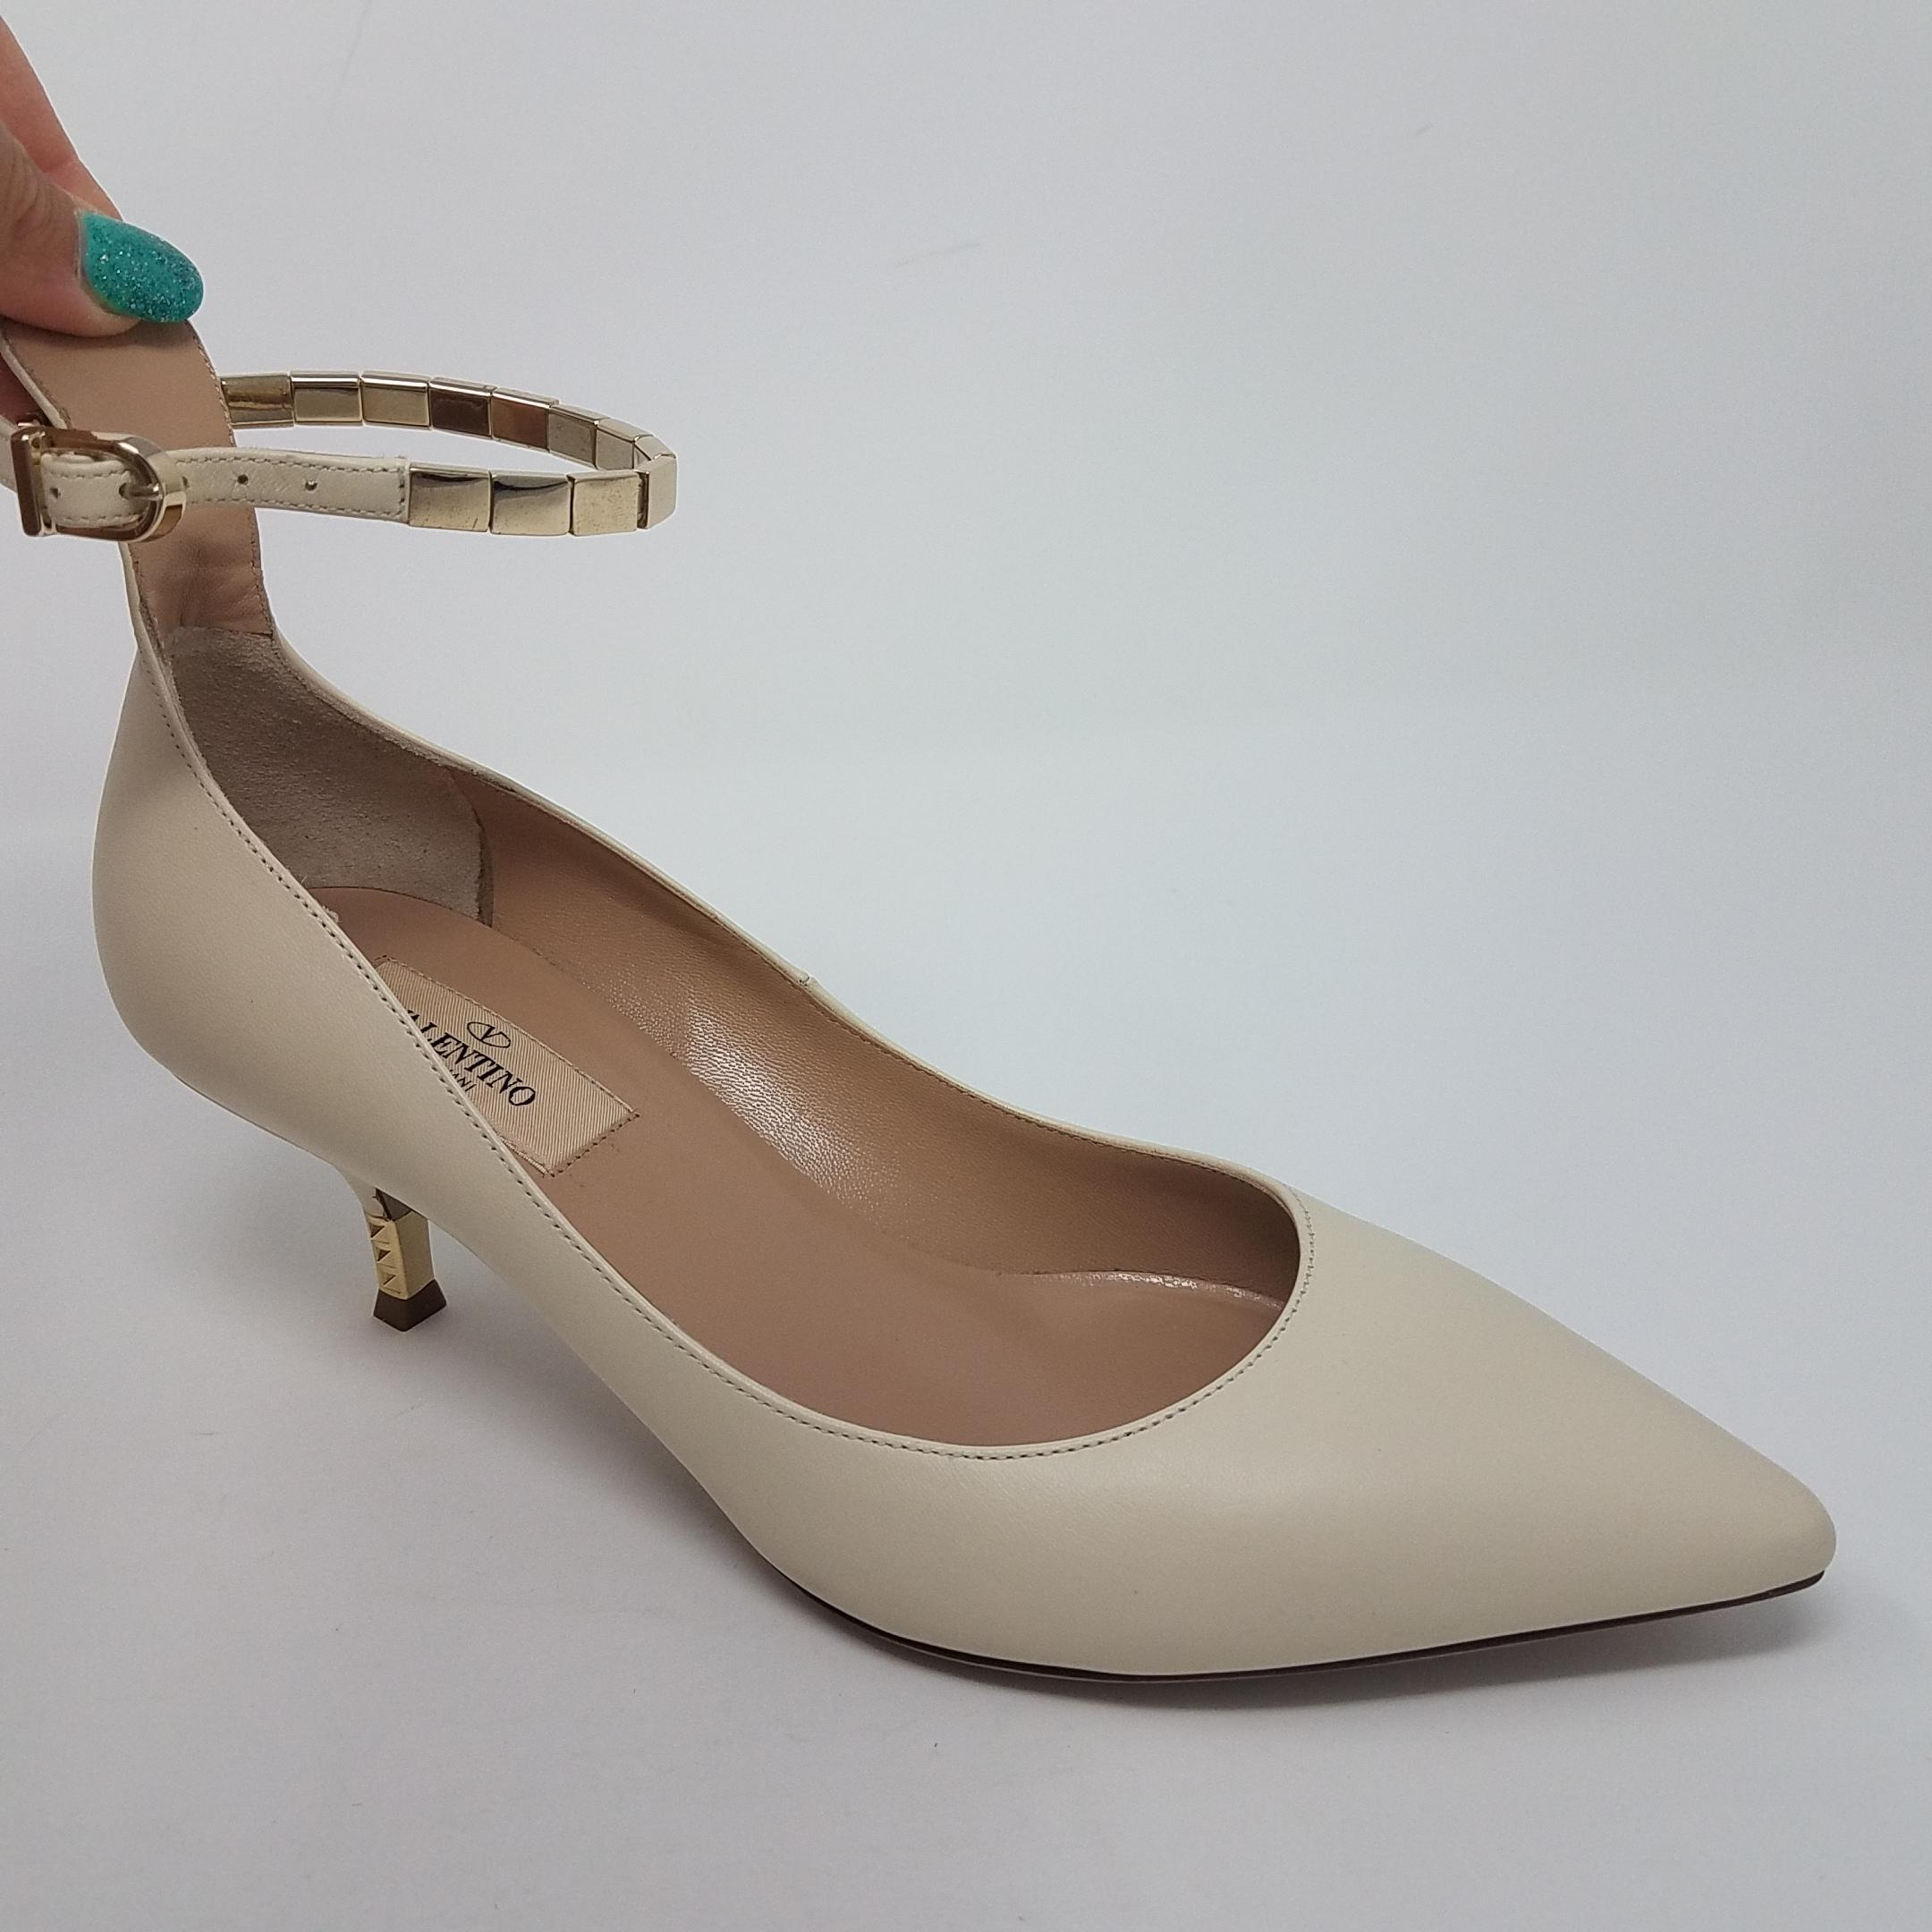 8291d0ea0c6 ... Valentino White Gold Ivory Leather Gold-tone Anle Anle Anle Chain  Pointed-toe Pumps ...